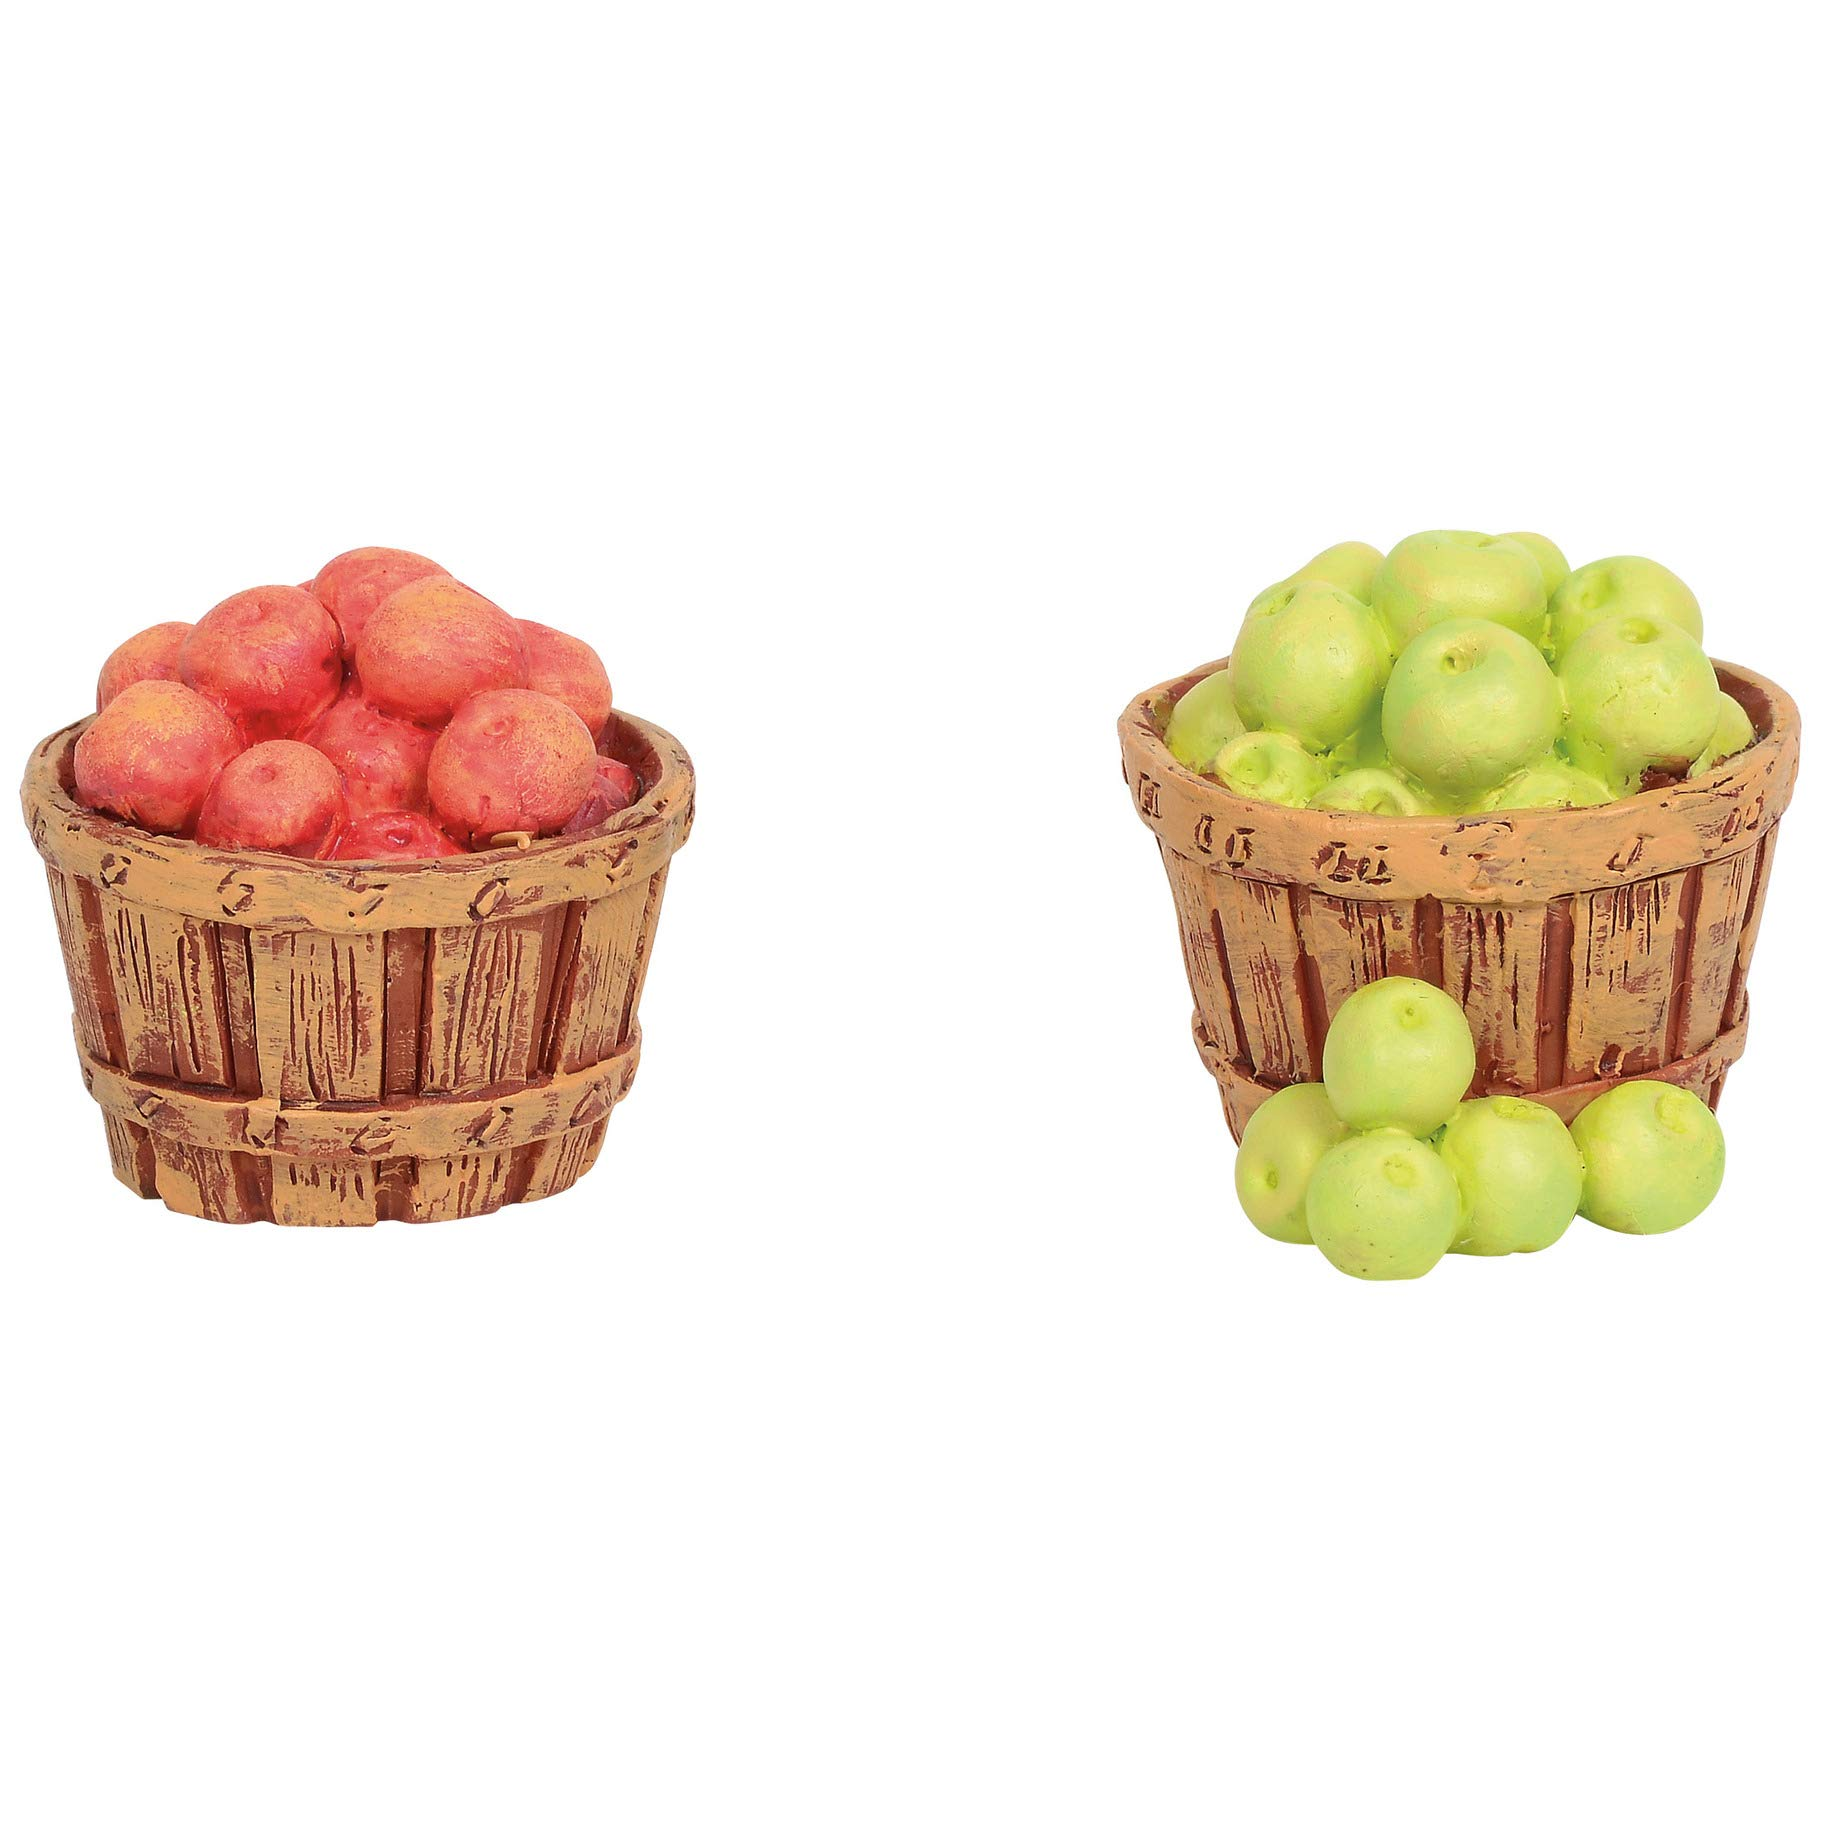 Department 56 Collections Accessories Village Baskets of Apples Figurines, 0.98'', Multicolor by Department 56